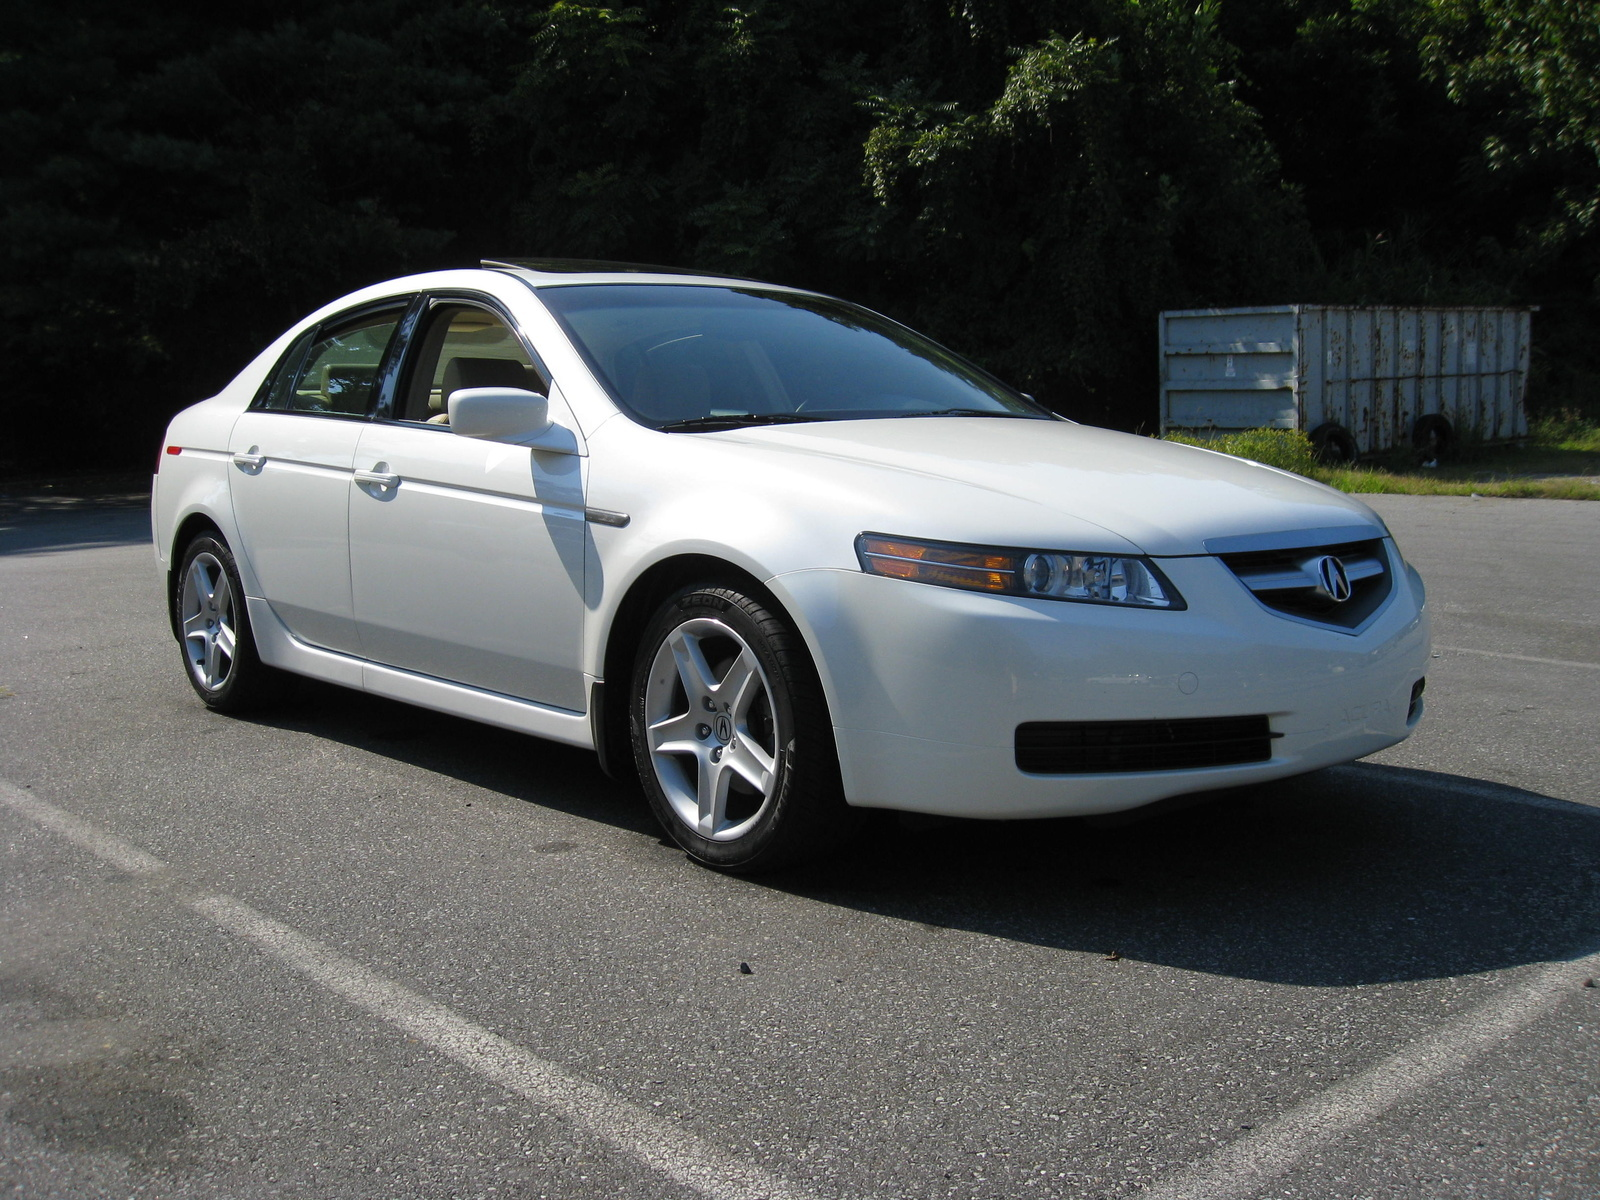 view acura manual magazine modp features yun yuns scott modified tl jpg side